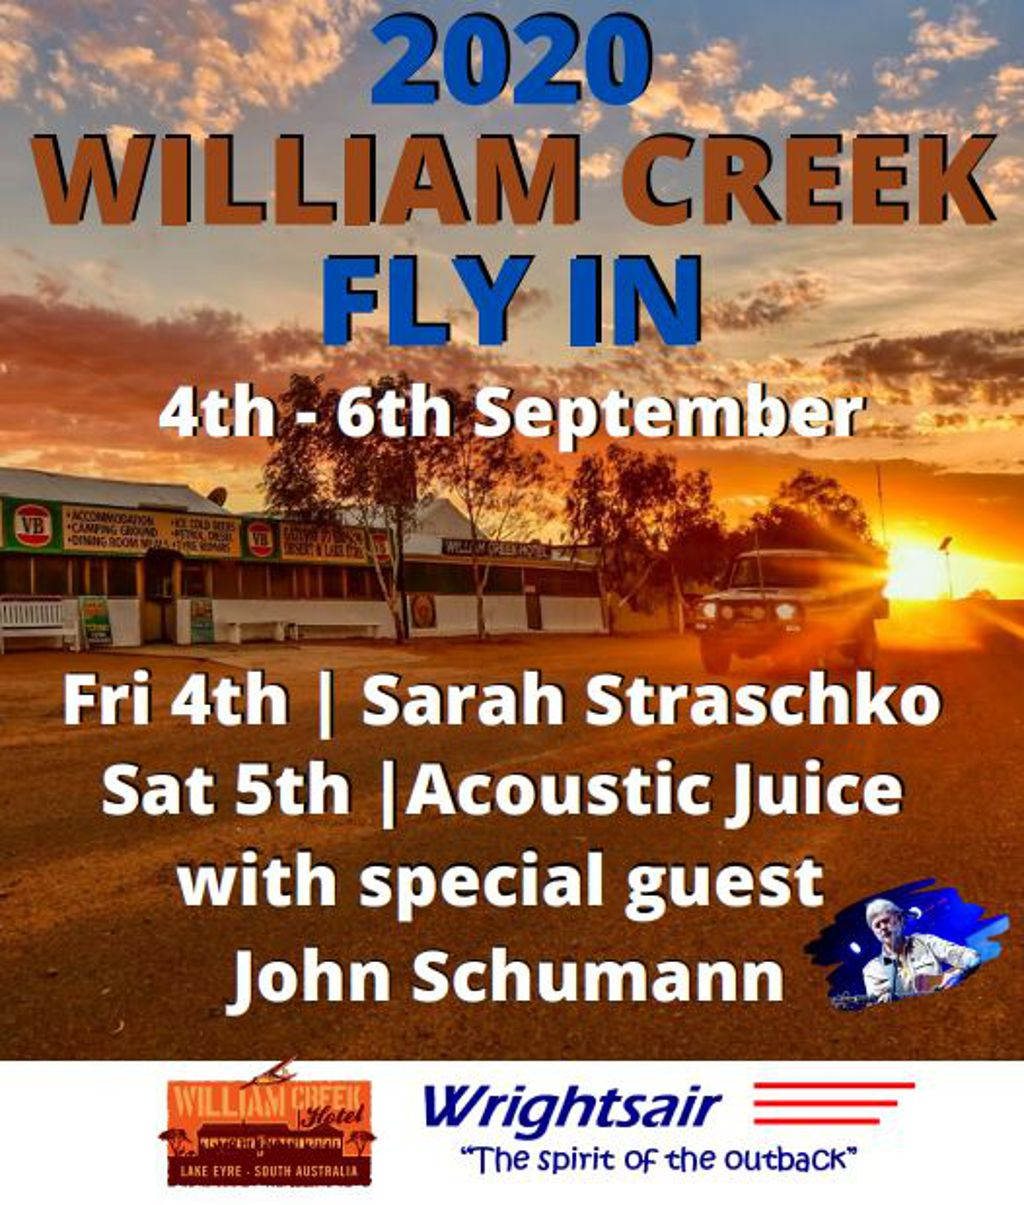 William Creek Sept 2020 FLY-IN